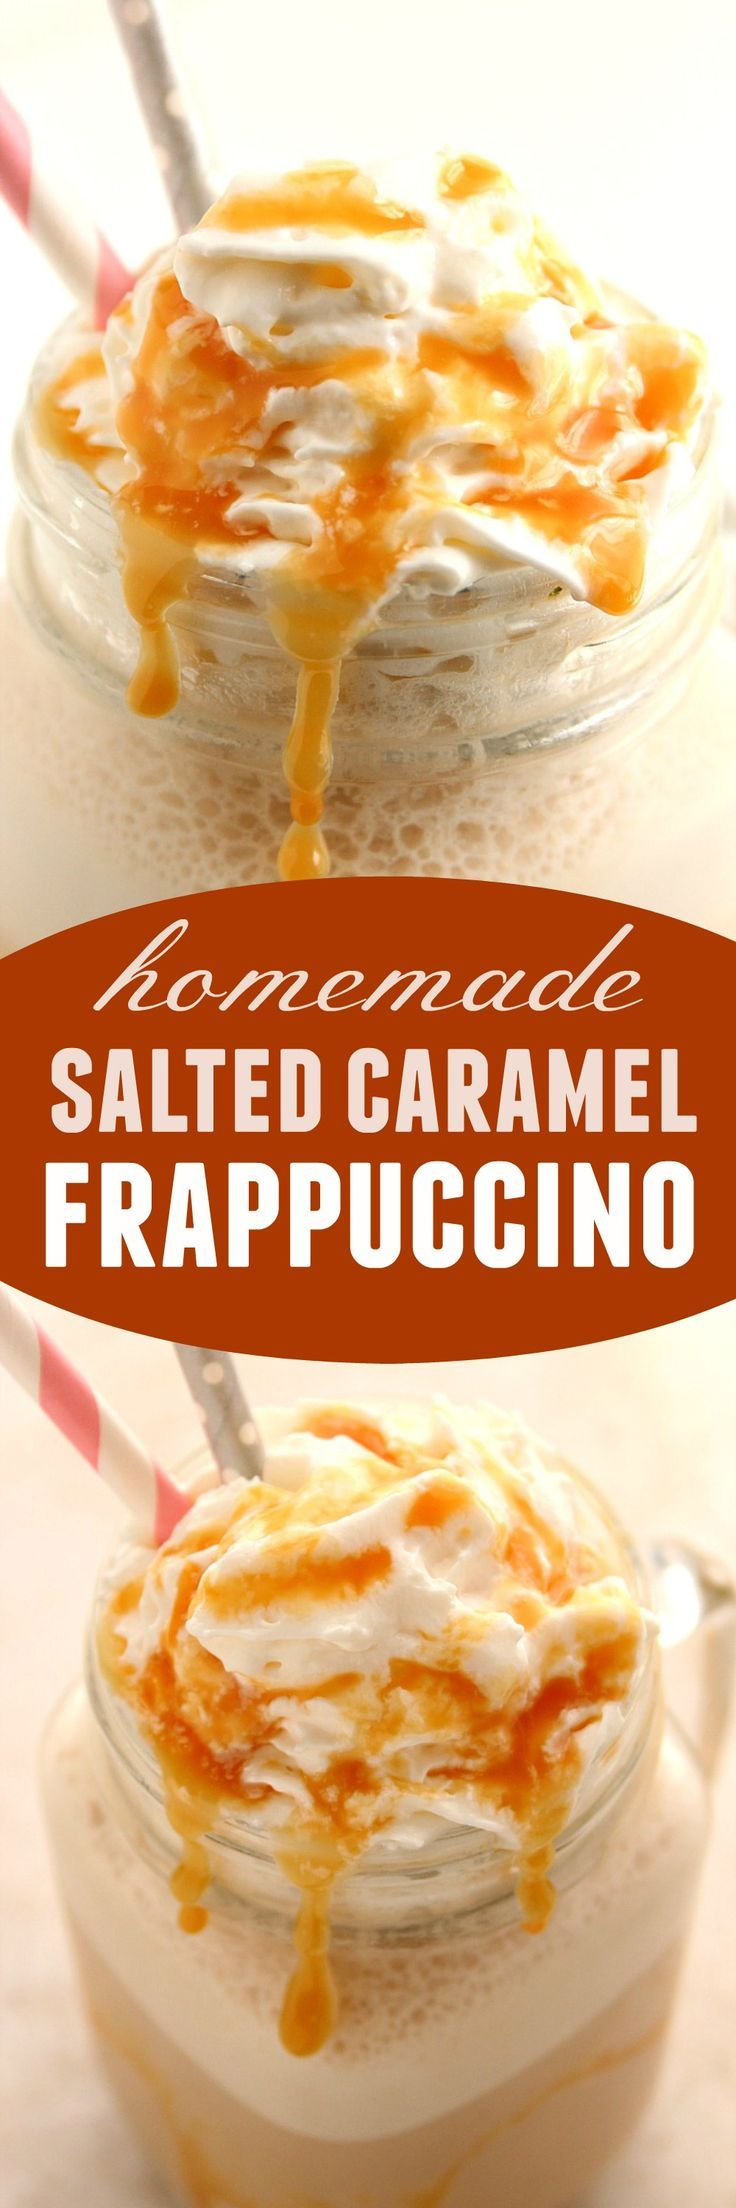 Homemade Salted Caramel Frappuccino Recipe - my favorite coffee shop drink in it's lighter, homemade version. So easy and absolutely delicious!: